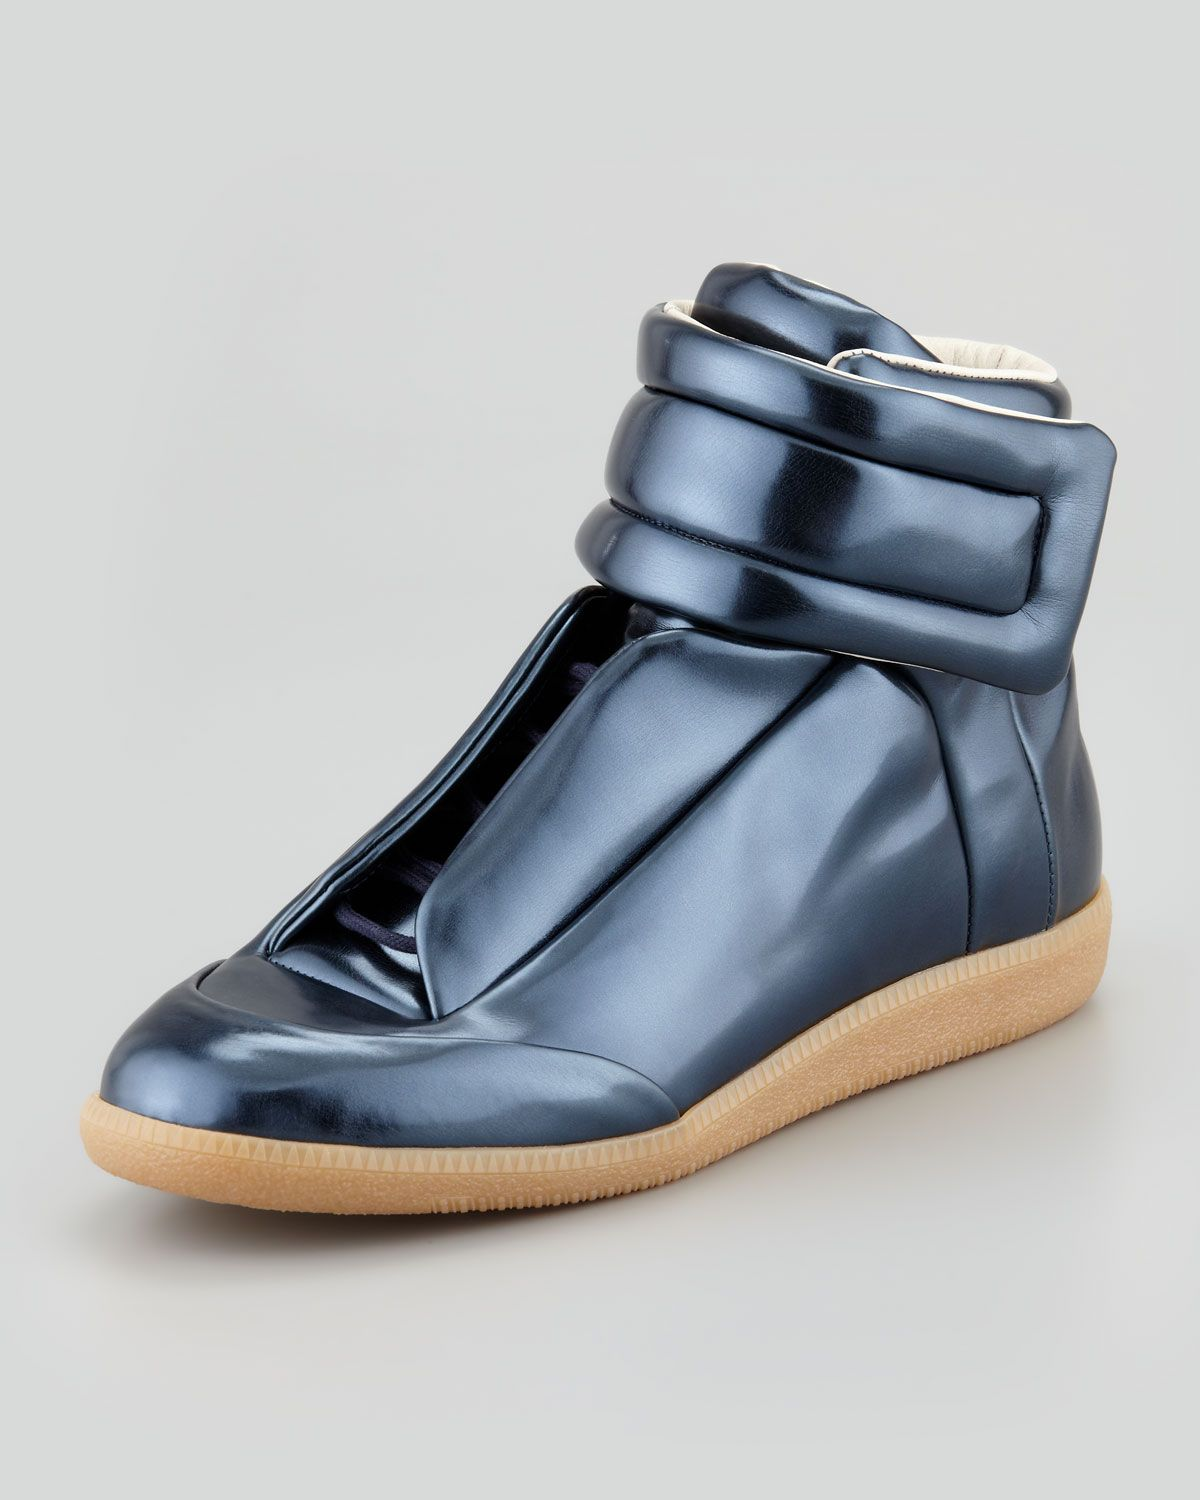 Maison Chaussures Margiela 8fORBb